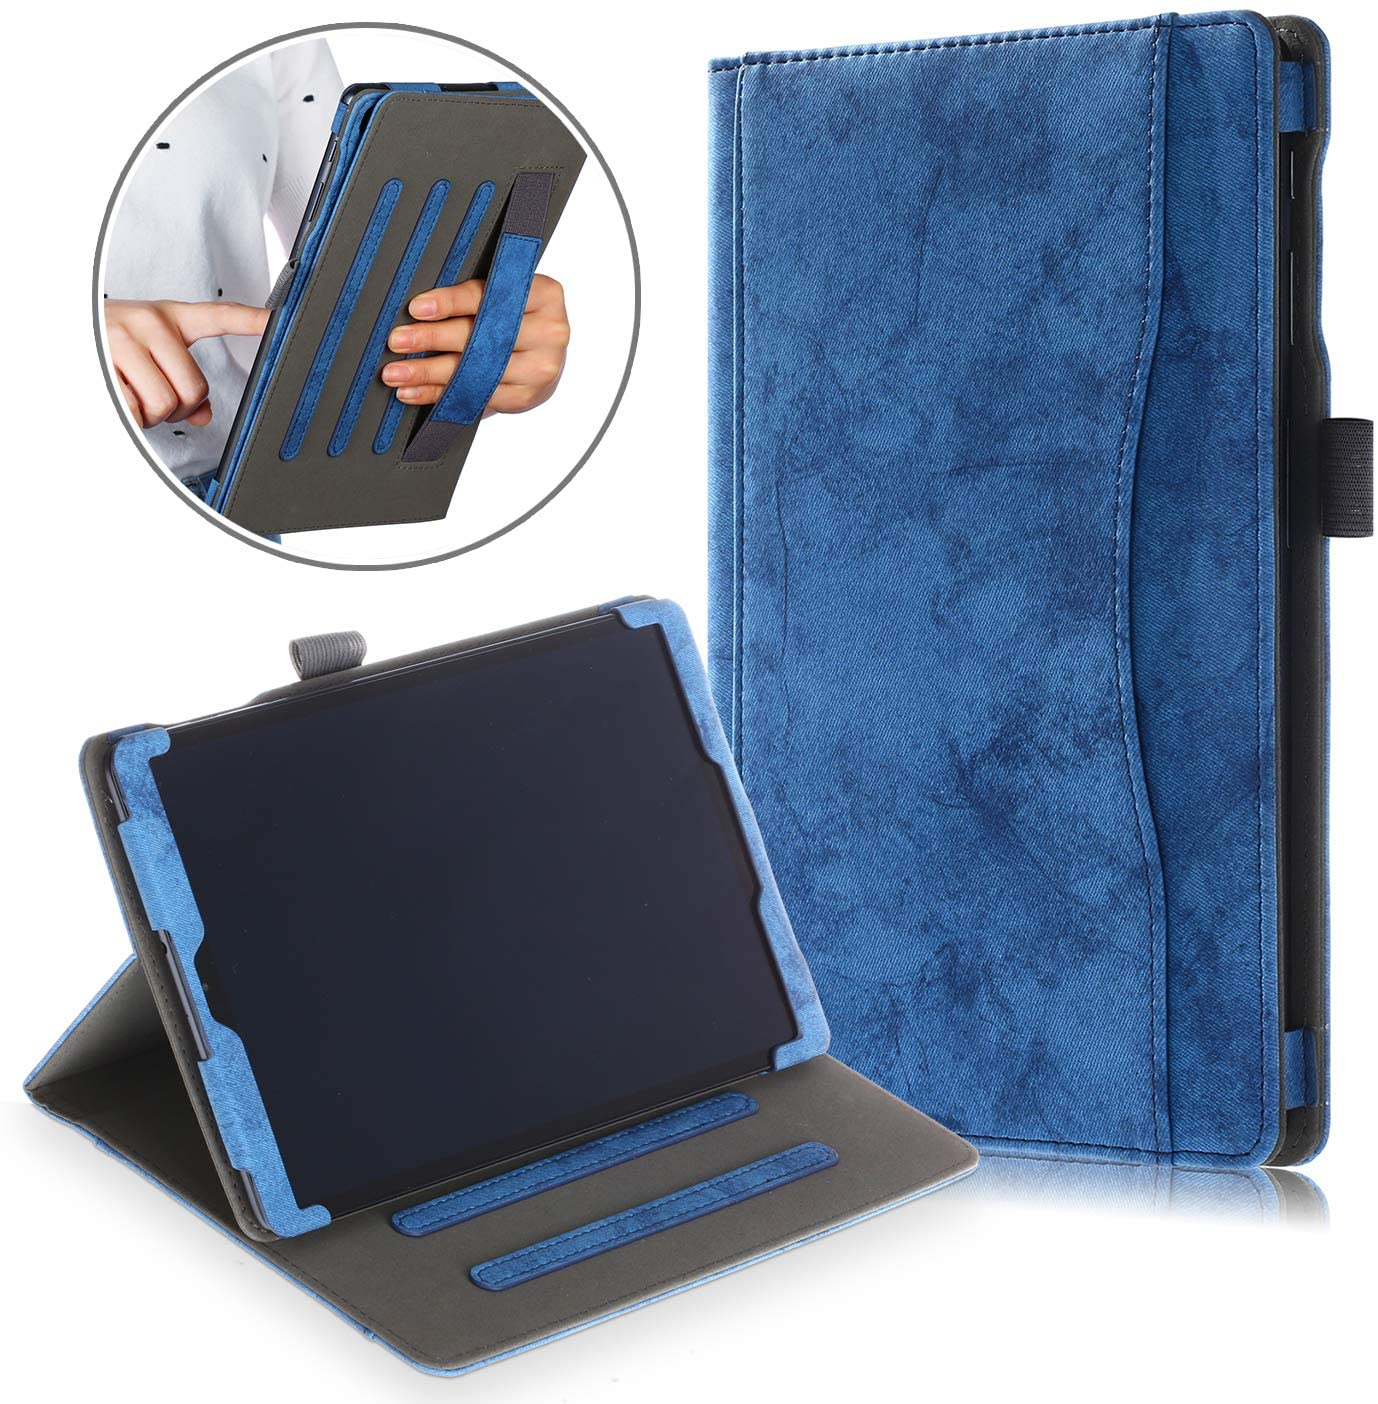 XBE Multi-Functional Stand Case Compatible with Samsung Galaxy TAB A T510/T515 10.1 Inch 2019,with Multiple Viewing Angles and Hand Holder, Darkblue